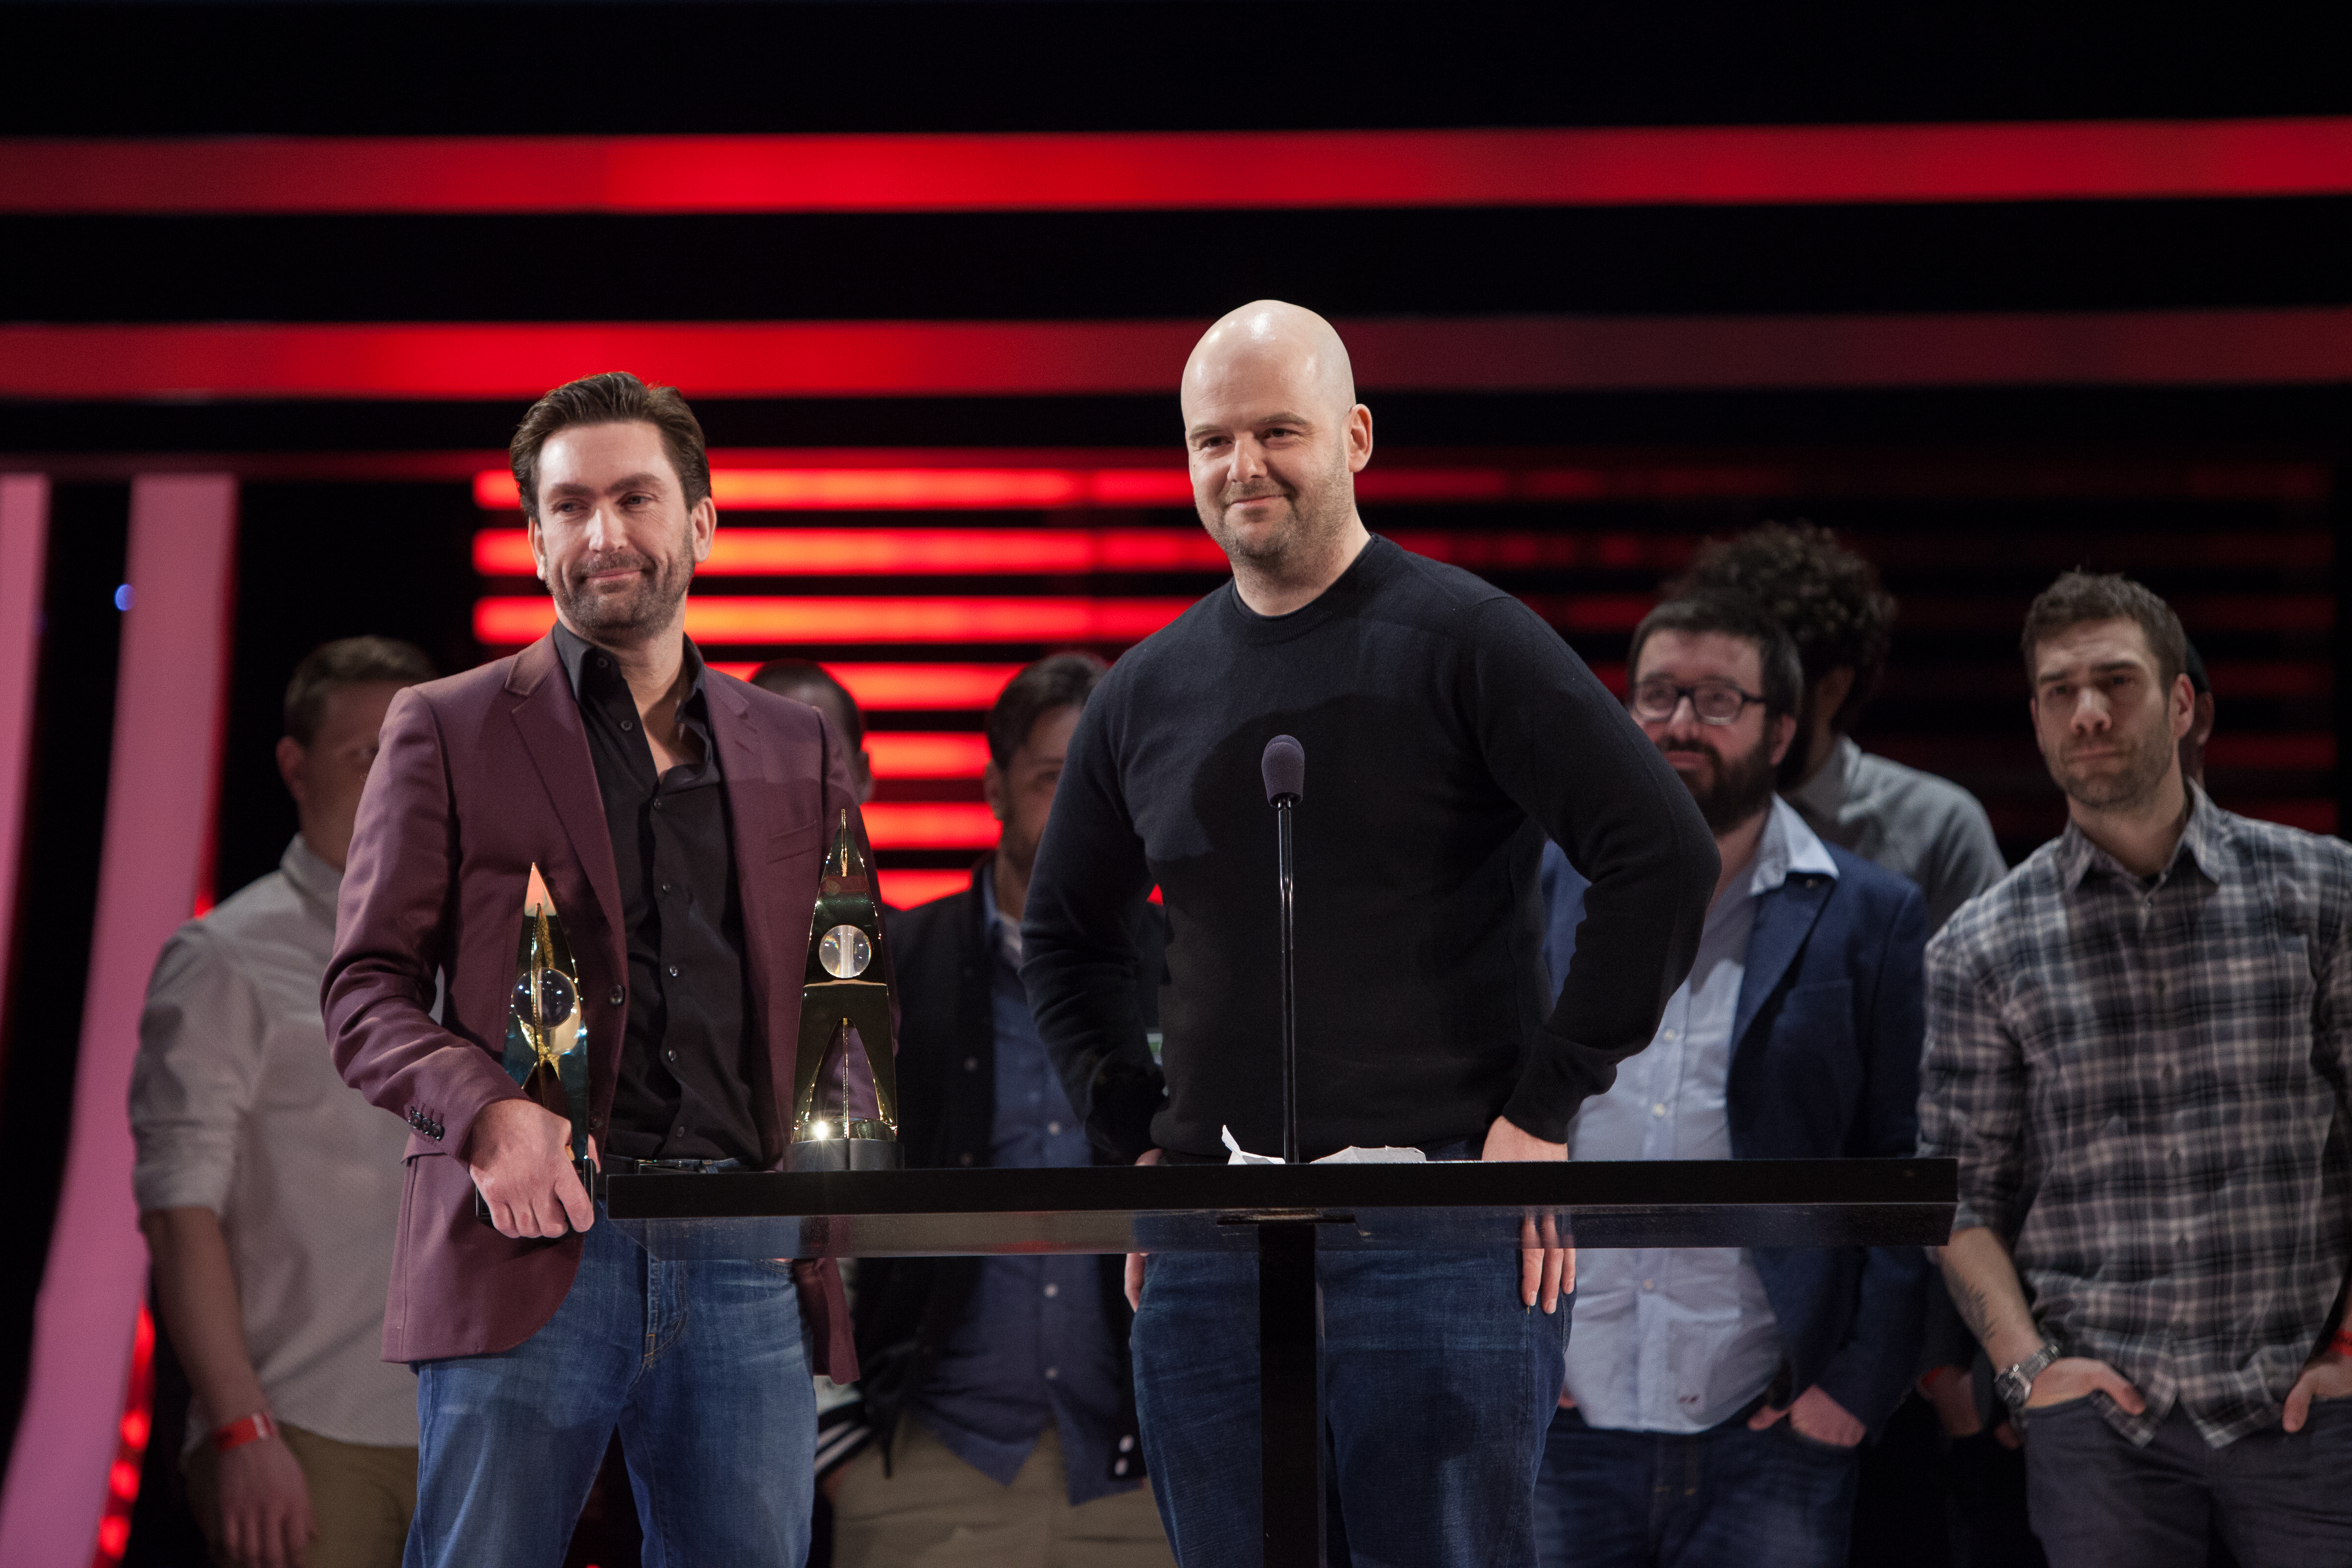 Leslie Benzies and Dan Houser accepting an award.